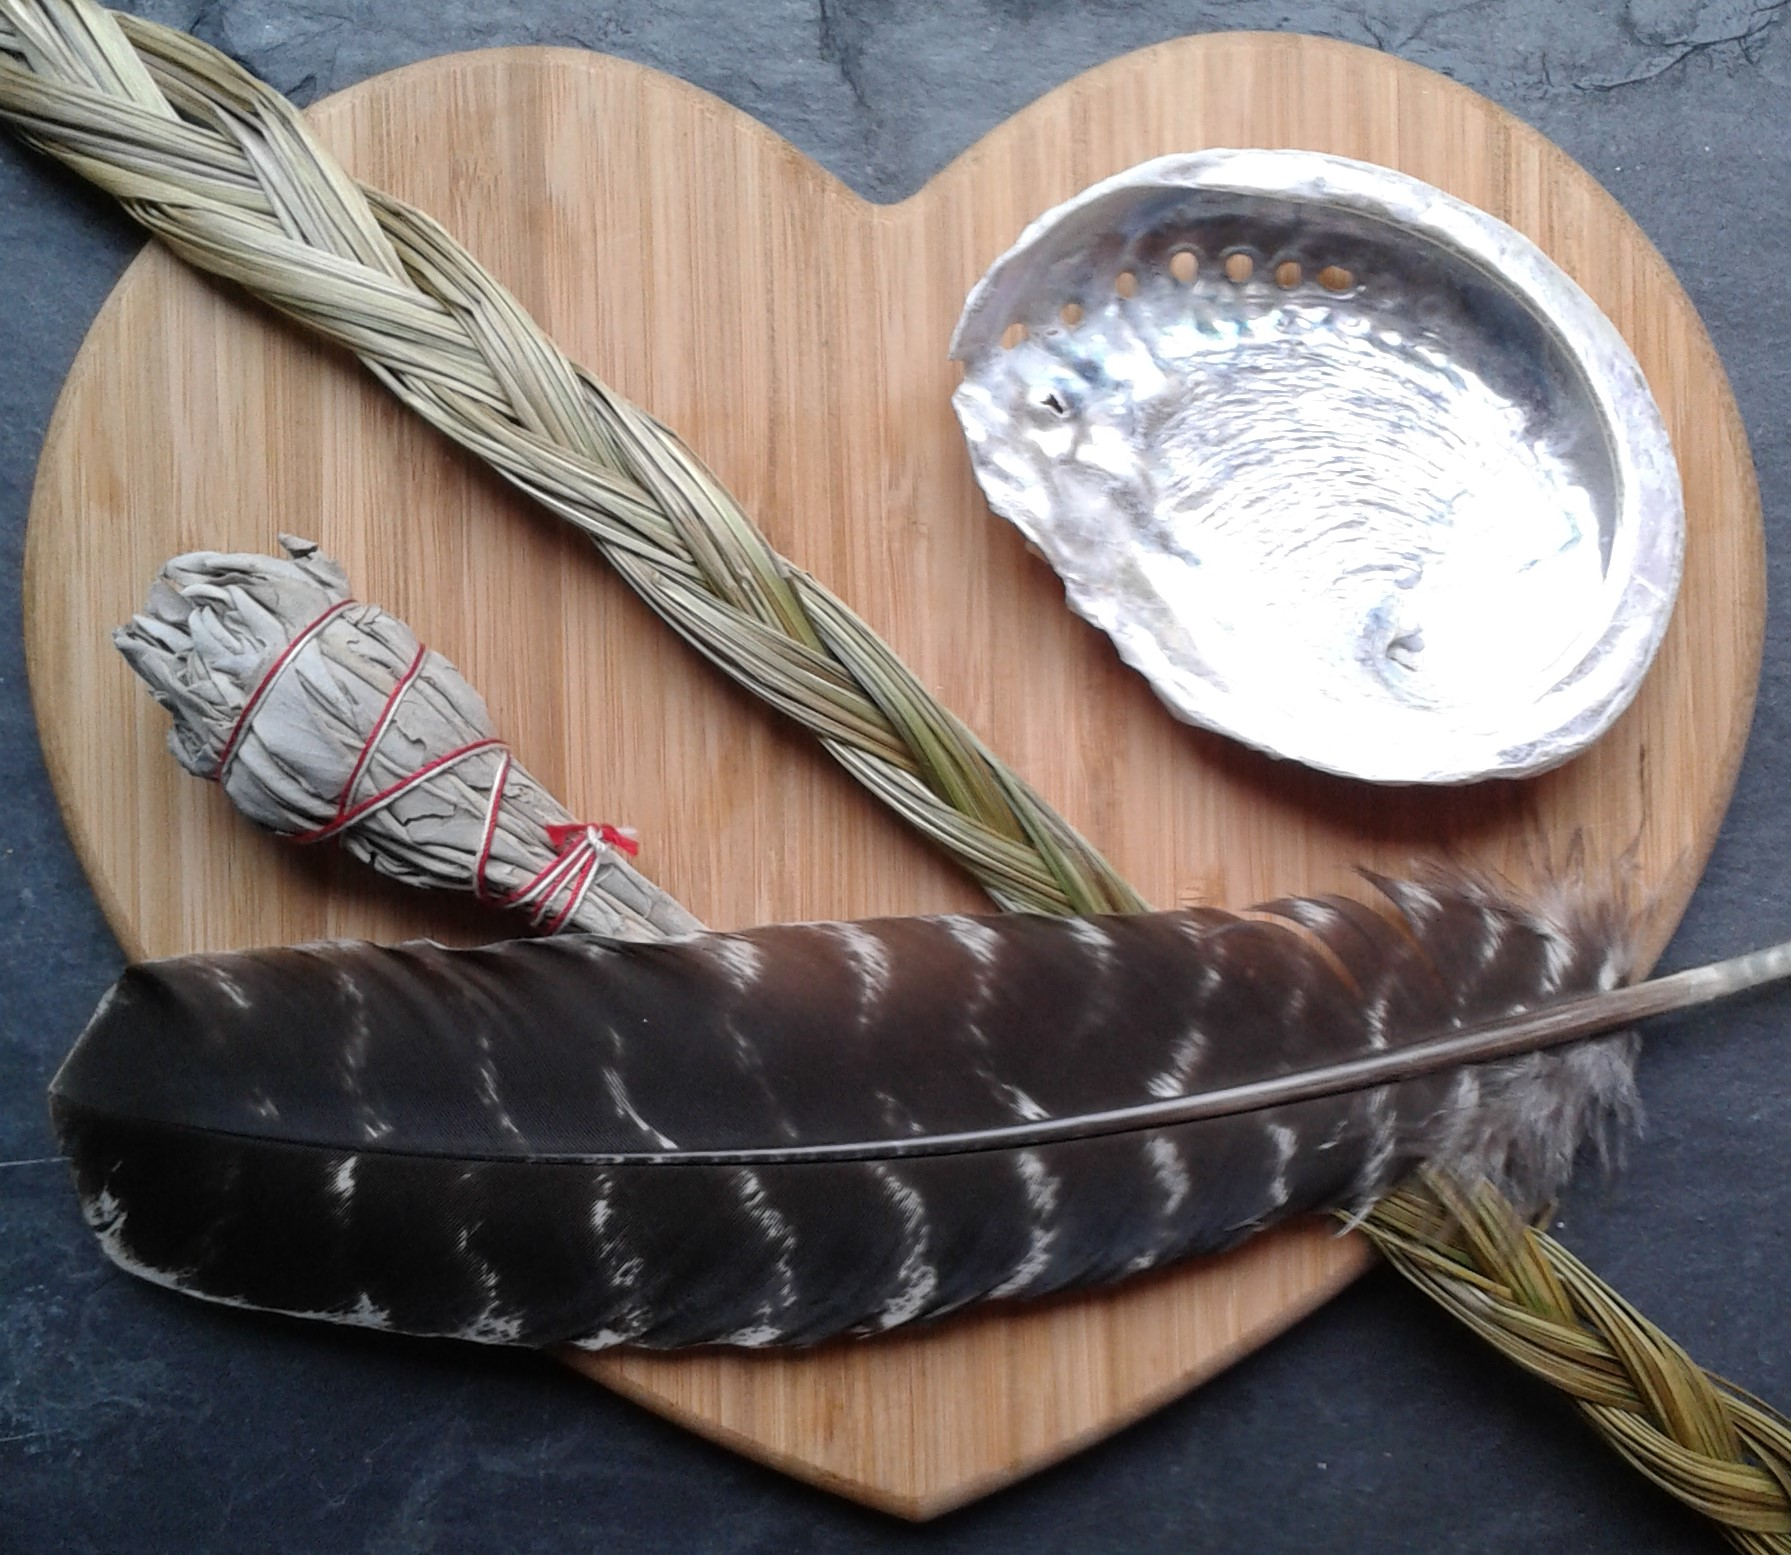 Blog 2-2019 Feb-shell bundle sweetgrass feather.jpg